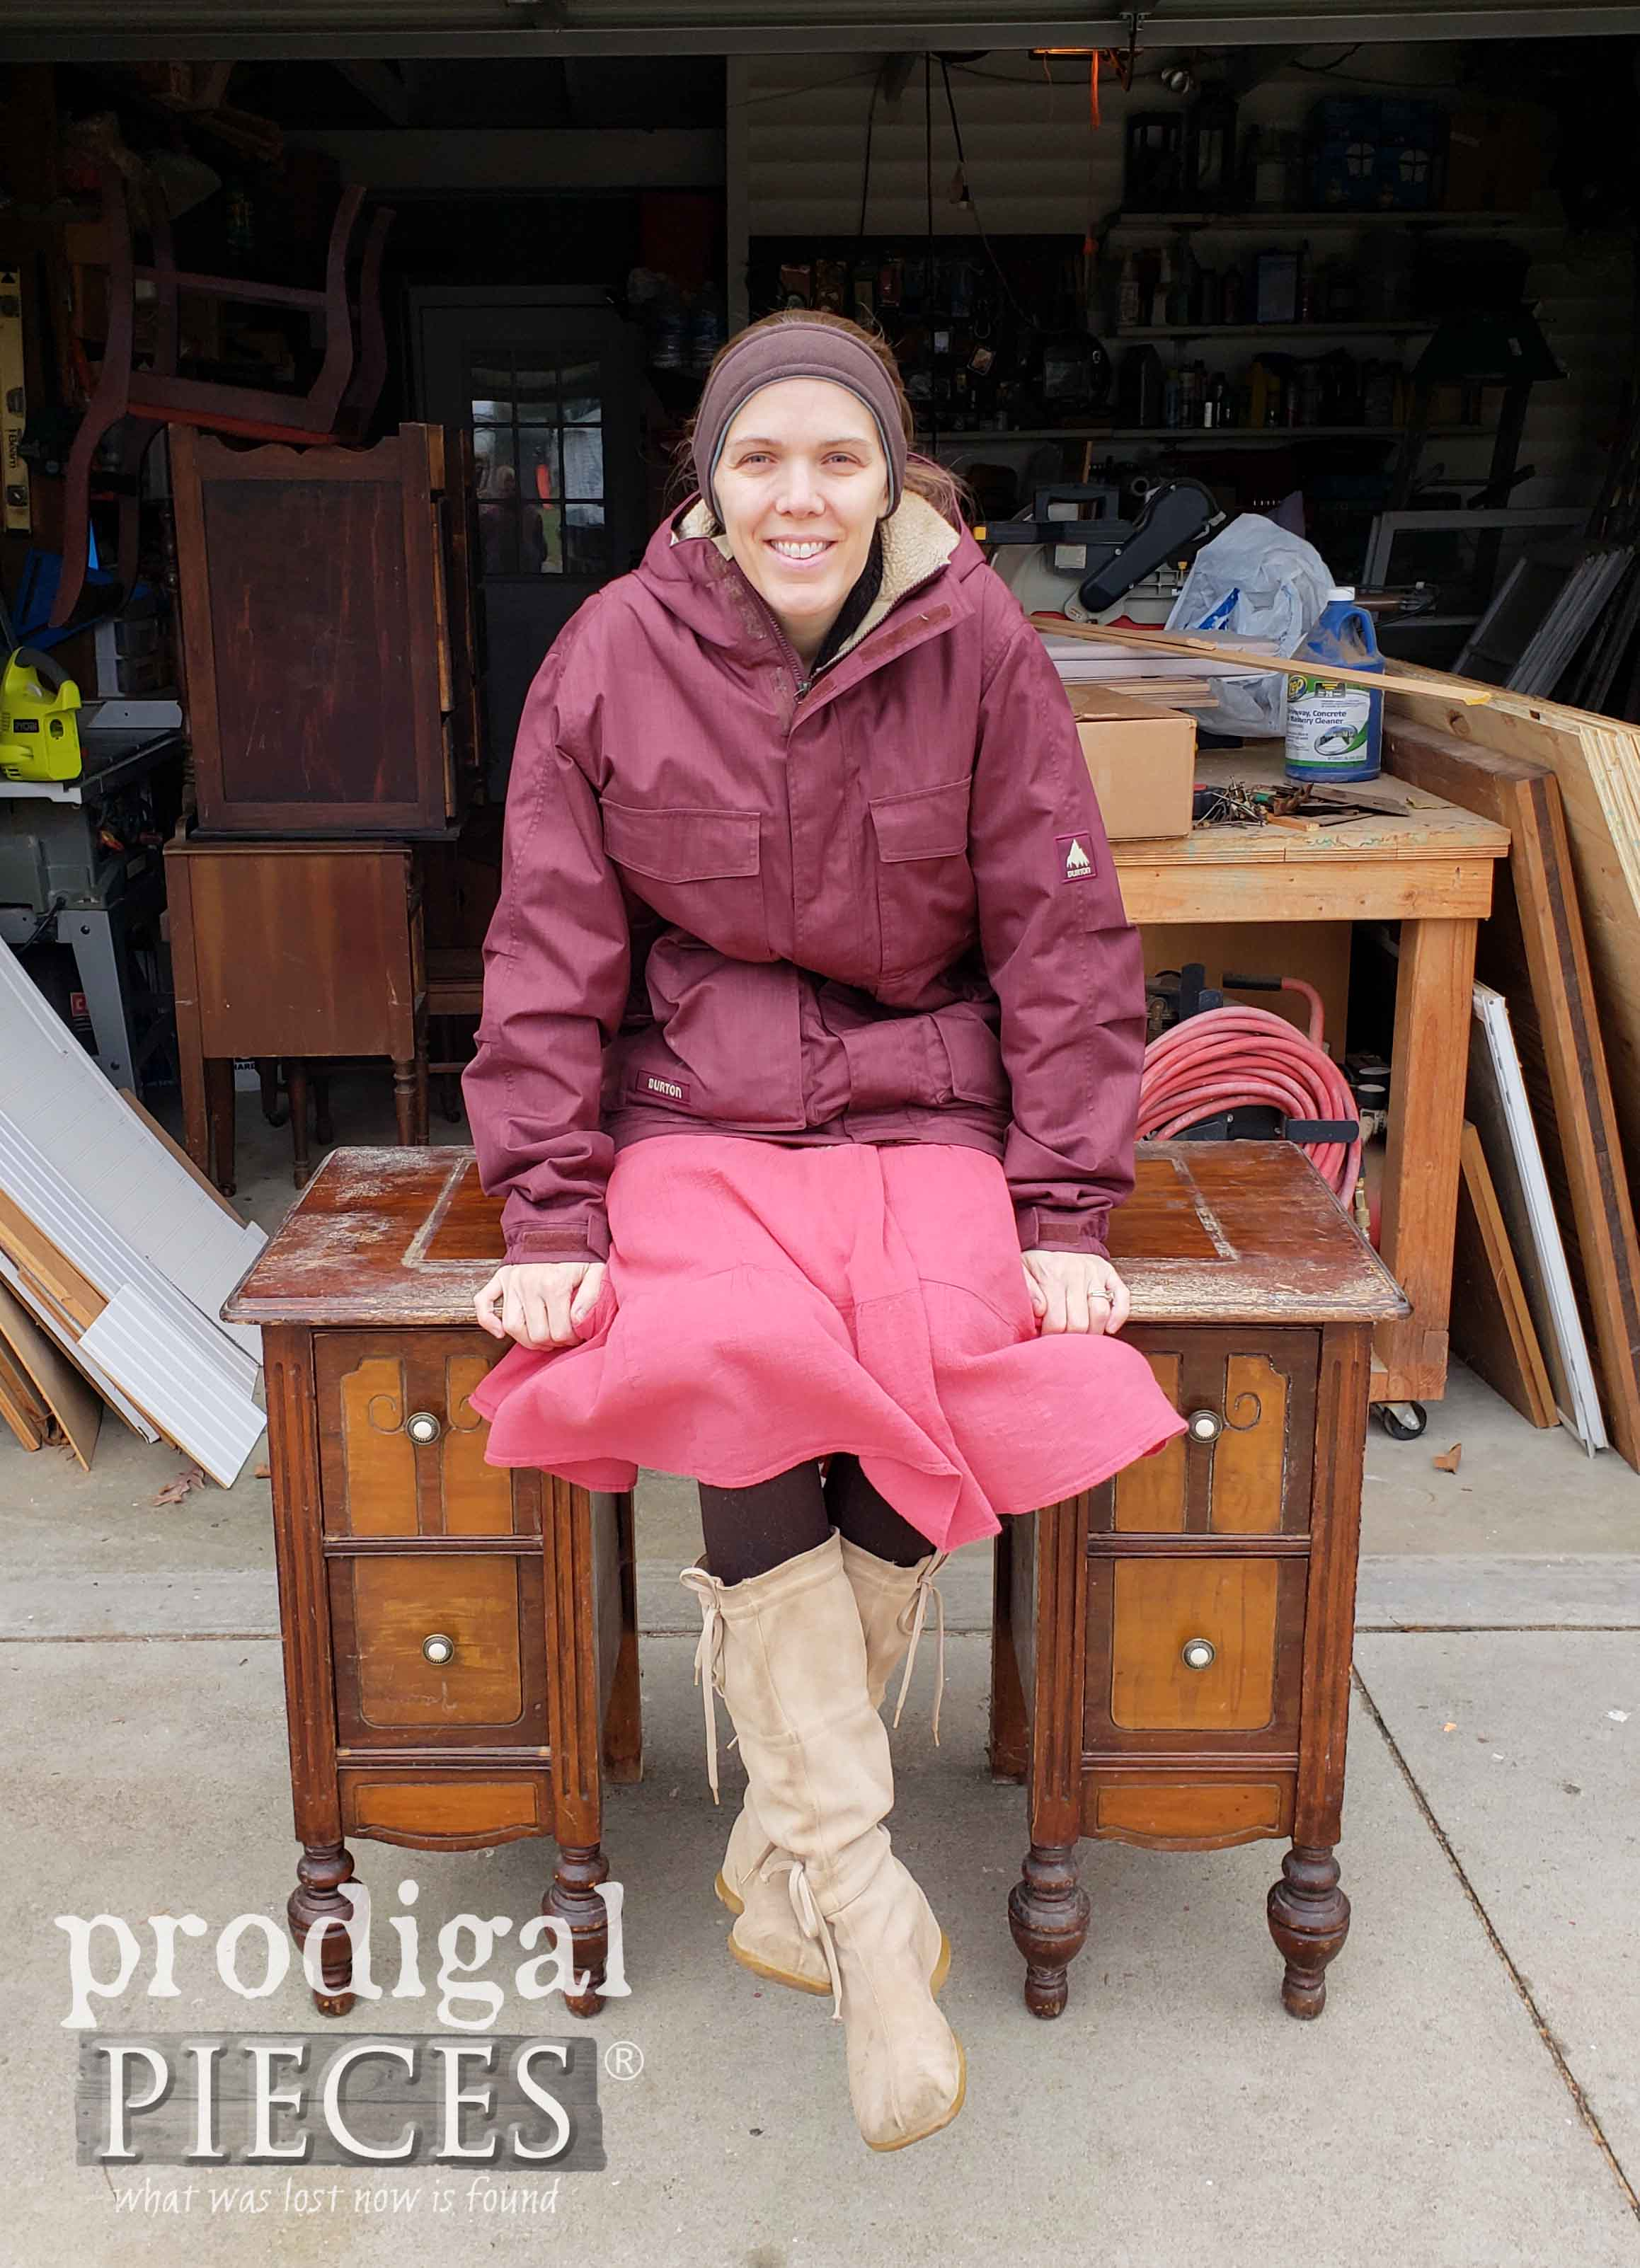 Larissa of Prodigal Pieces perched on an Antique Dressing Table | prodigalpieces.com